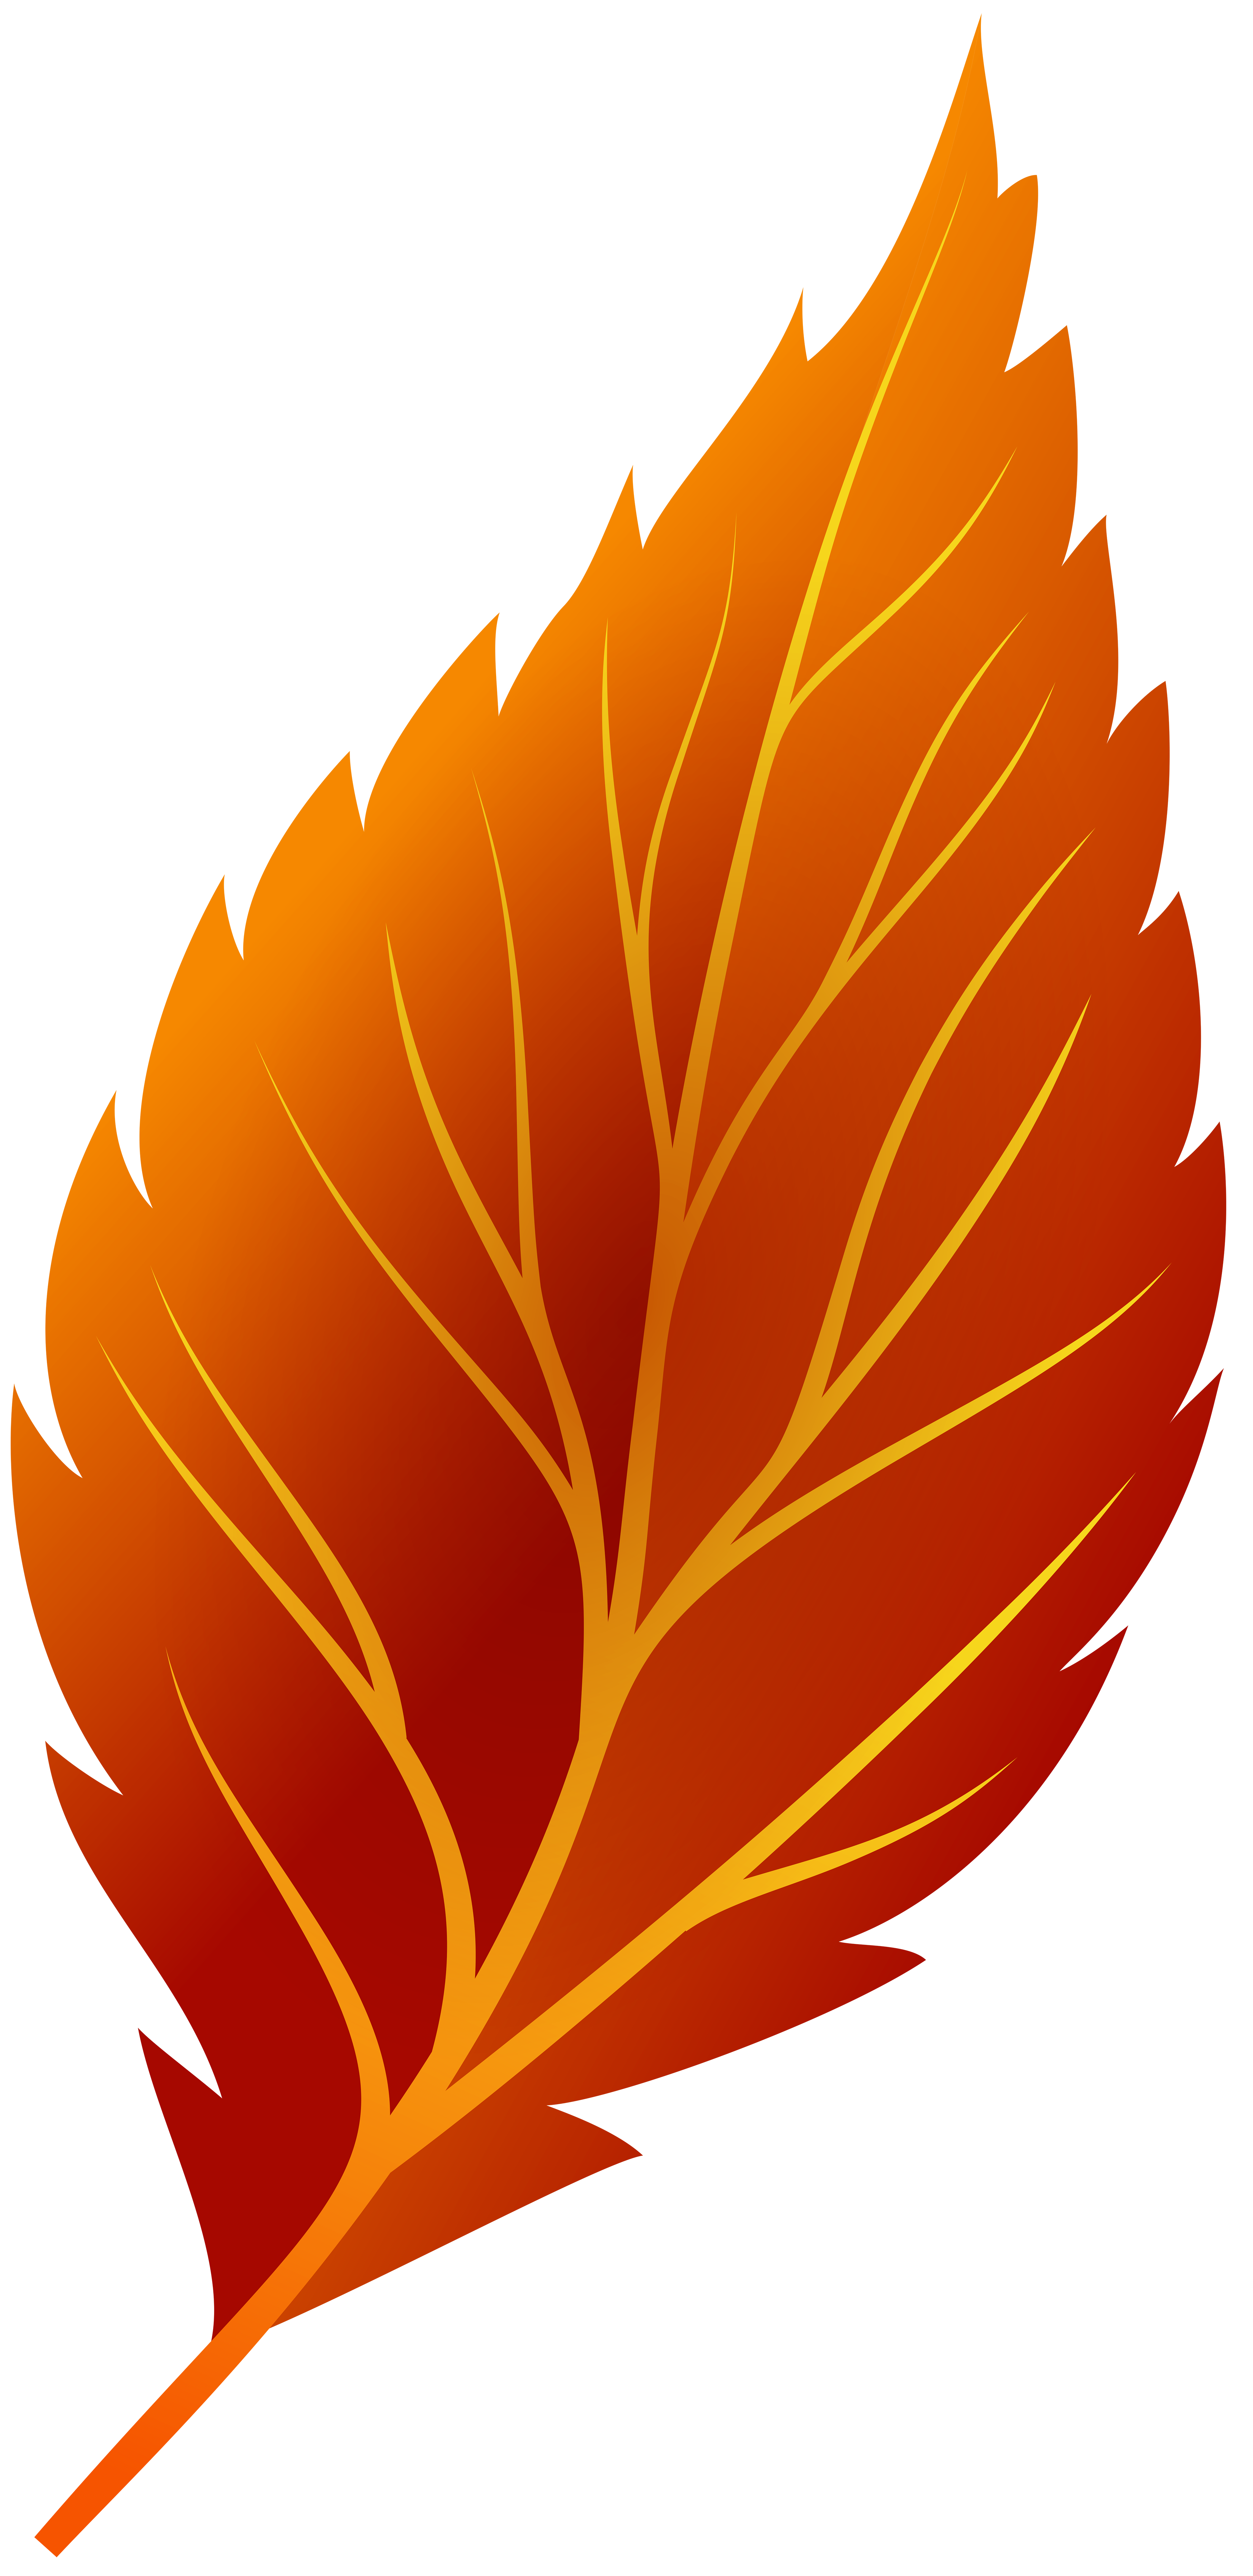 Fall leaf clip art png. Red autumn best web